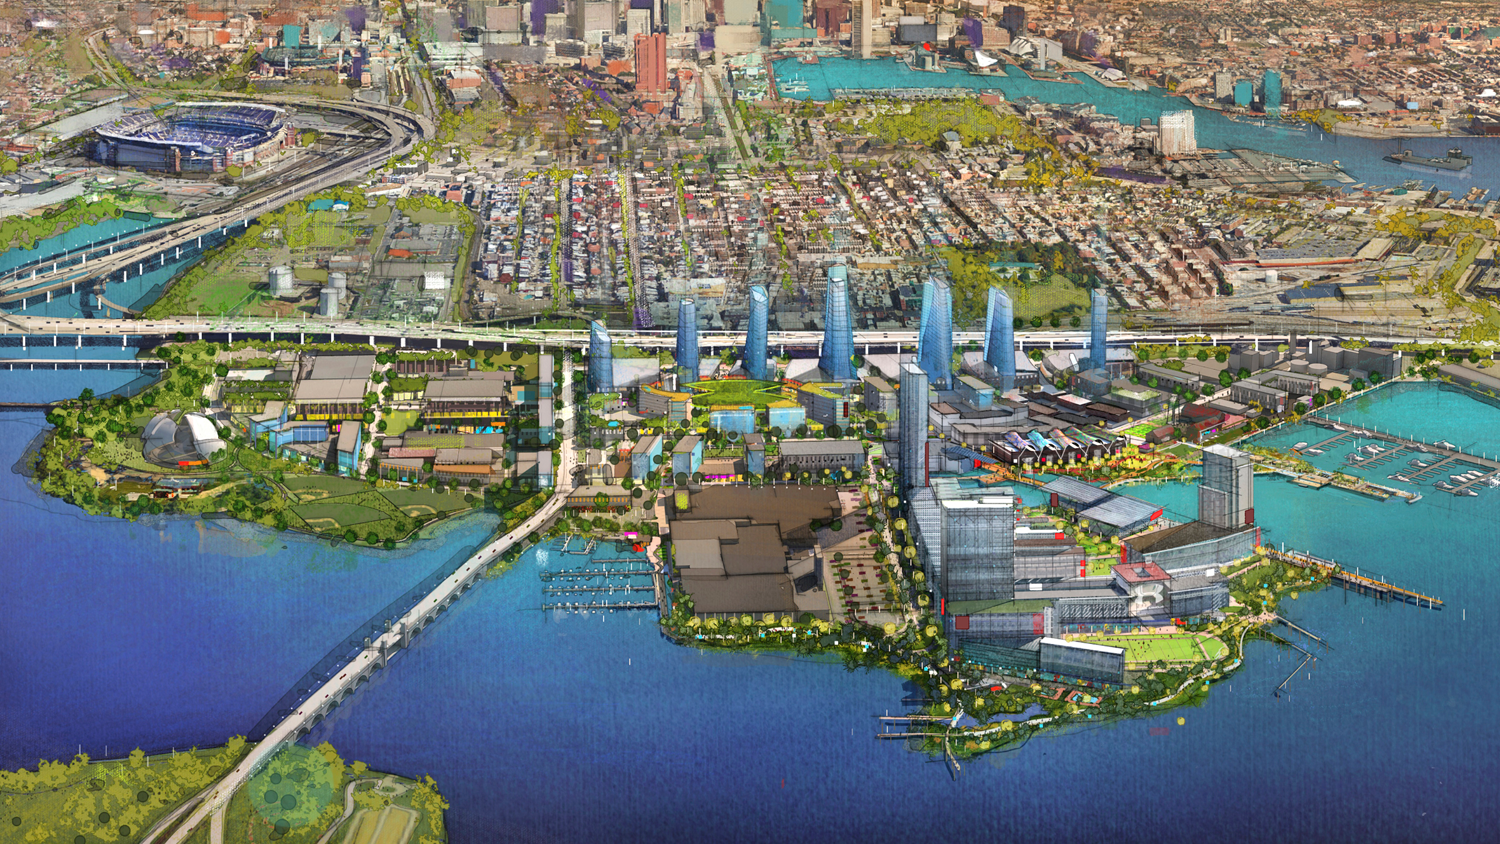 The port covington redevelopment project examined the for The covington